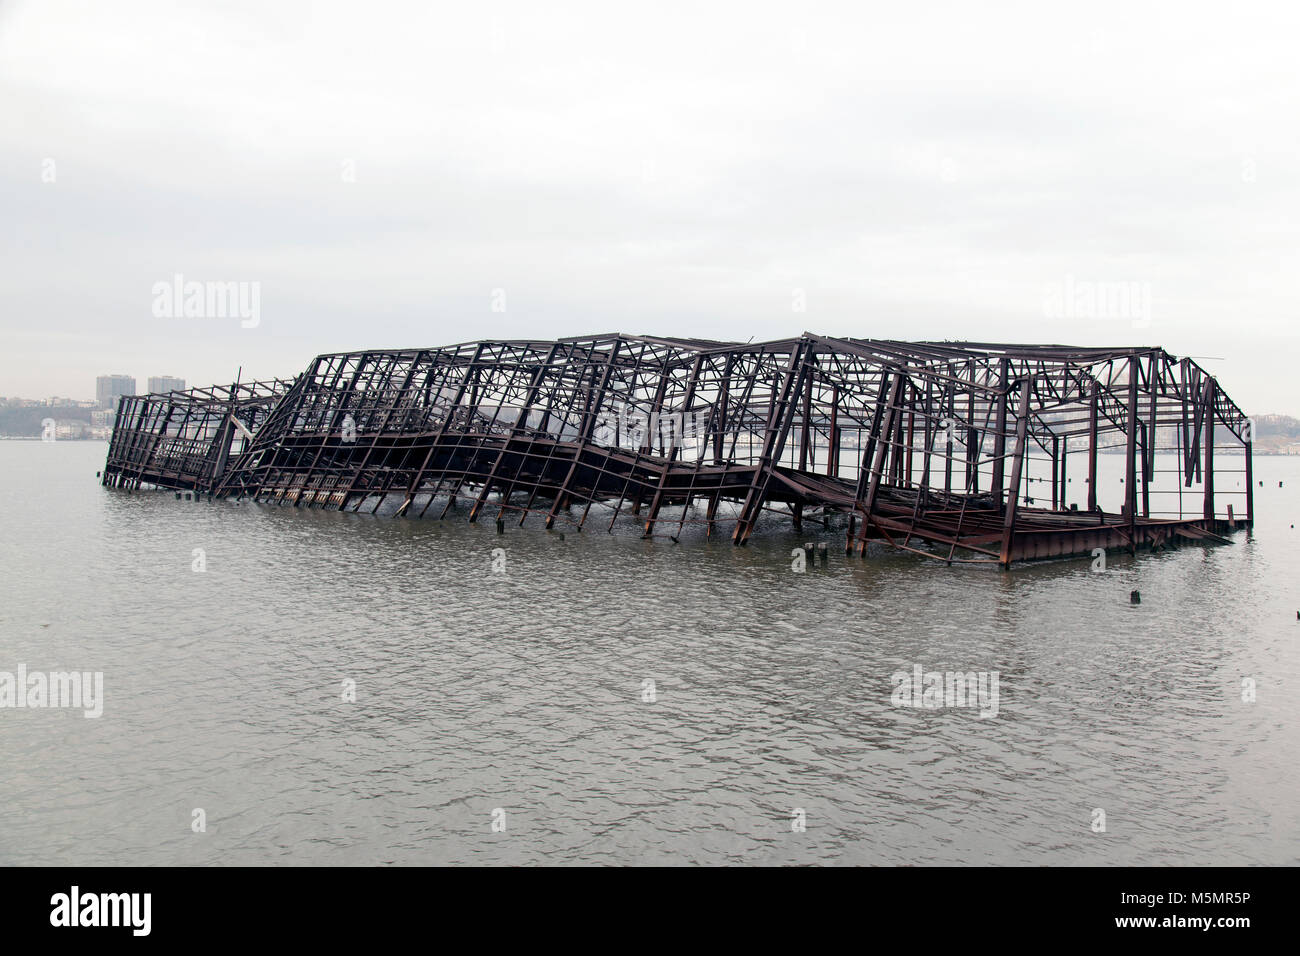 Abandoned metal built structure collapsed in the river - Stock Image